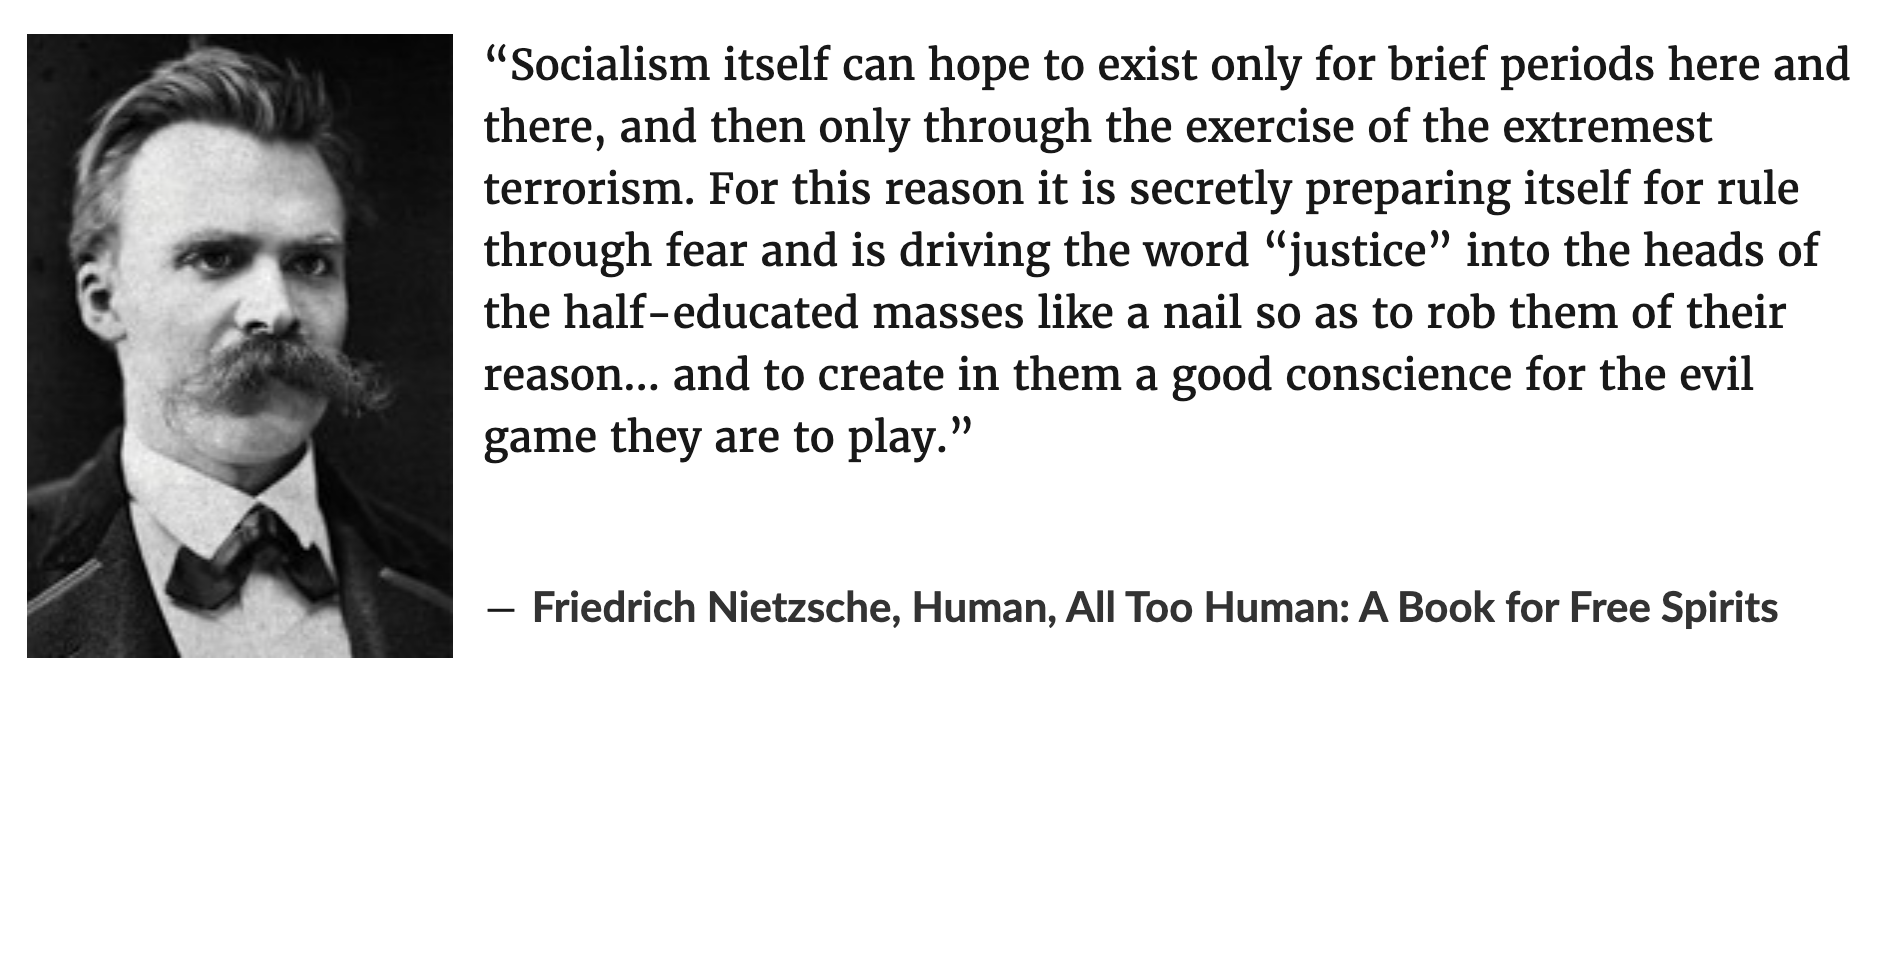 """Socialism itself can hope to exist only for brief periods here and there, and then only through the exercise of the extremest terrorism. For this reason it is secretly preparing itself for rule through fear and is driving the word ""justice""…"" -Friedrich Nietzsche [1896×971]"